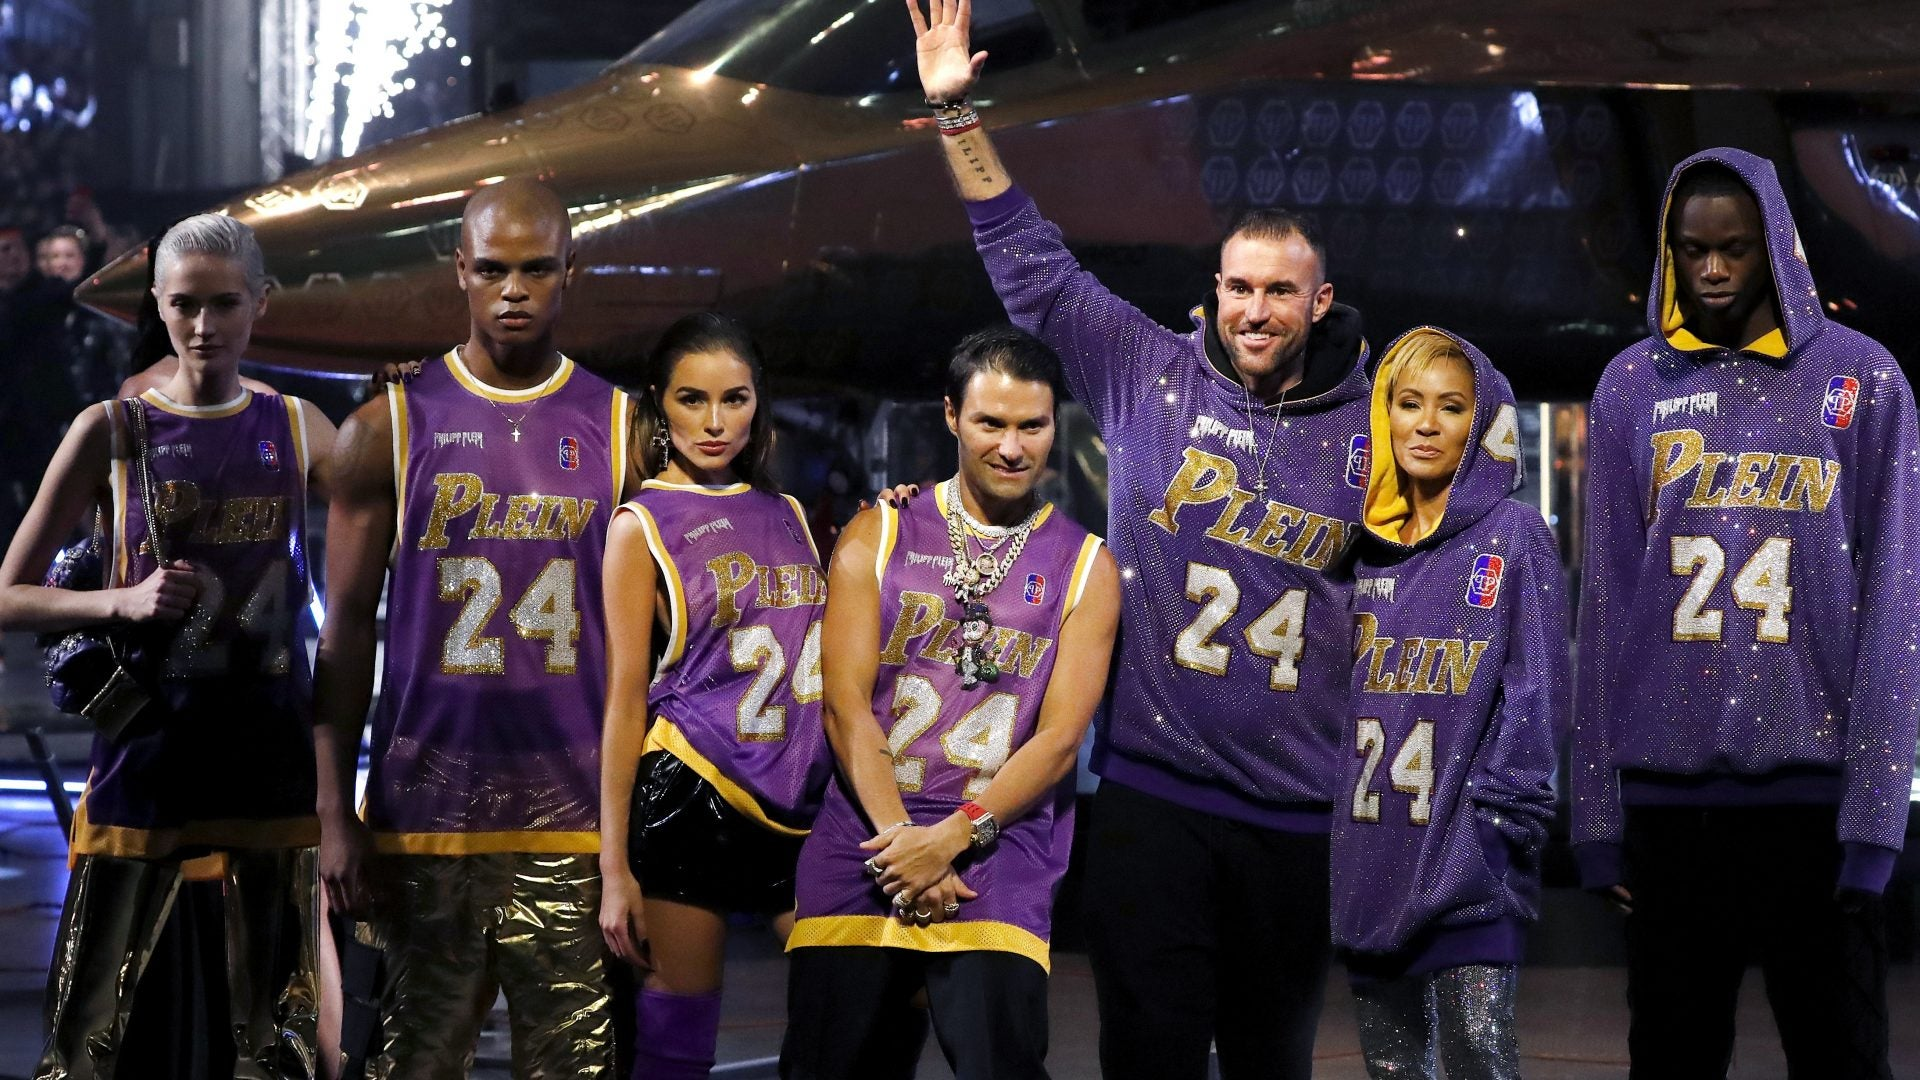 The Internet Reacts To Philipp Plein's Kobe Bryant Tribute